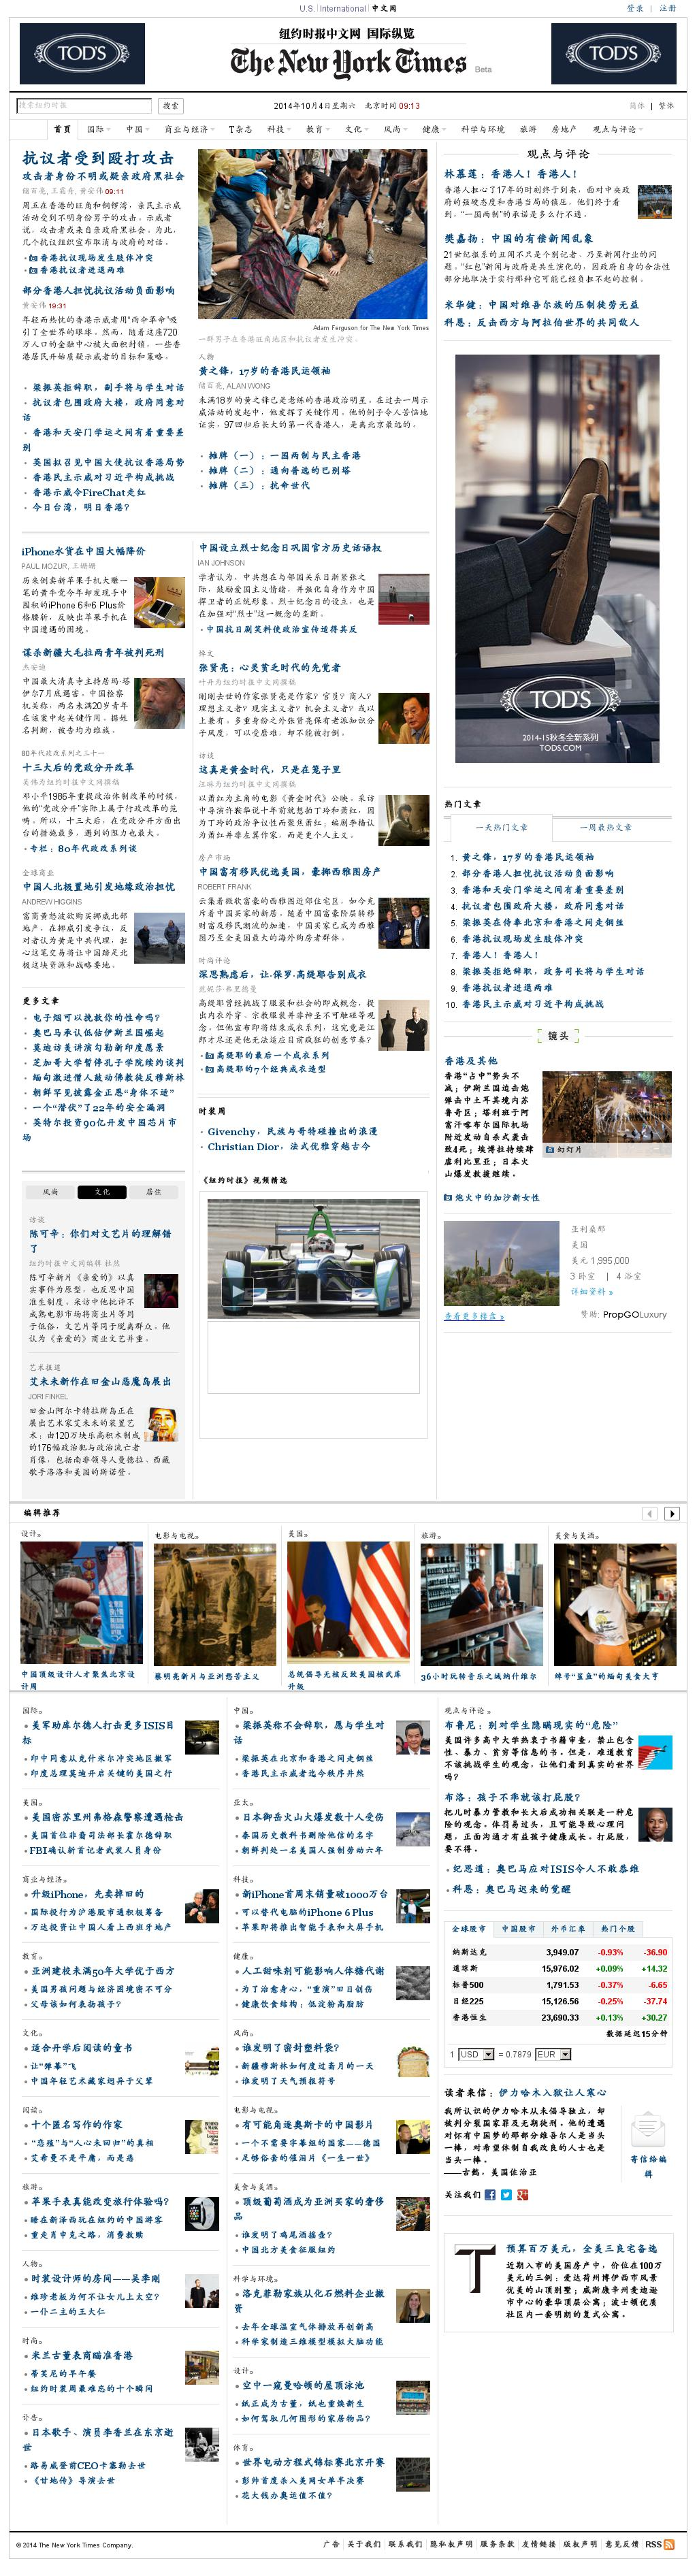 The New York Times (Chinese) at Saturday Oct. 4, 2014, 1:18 a.m. UTC